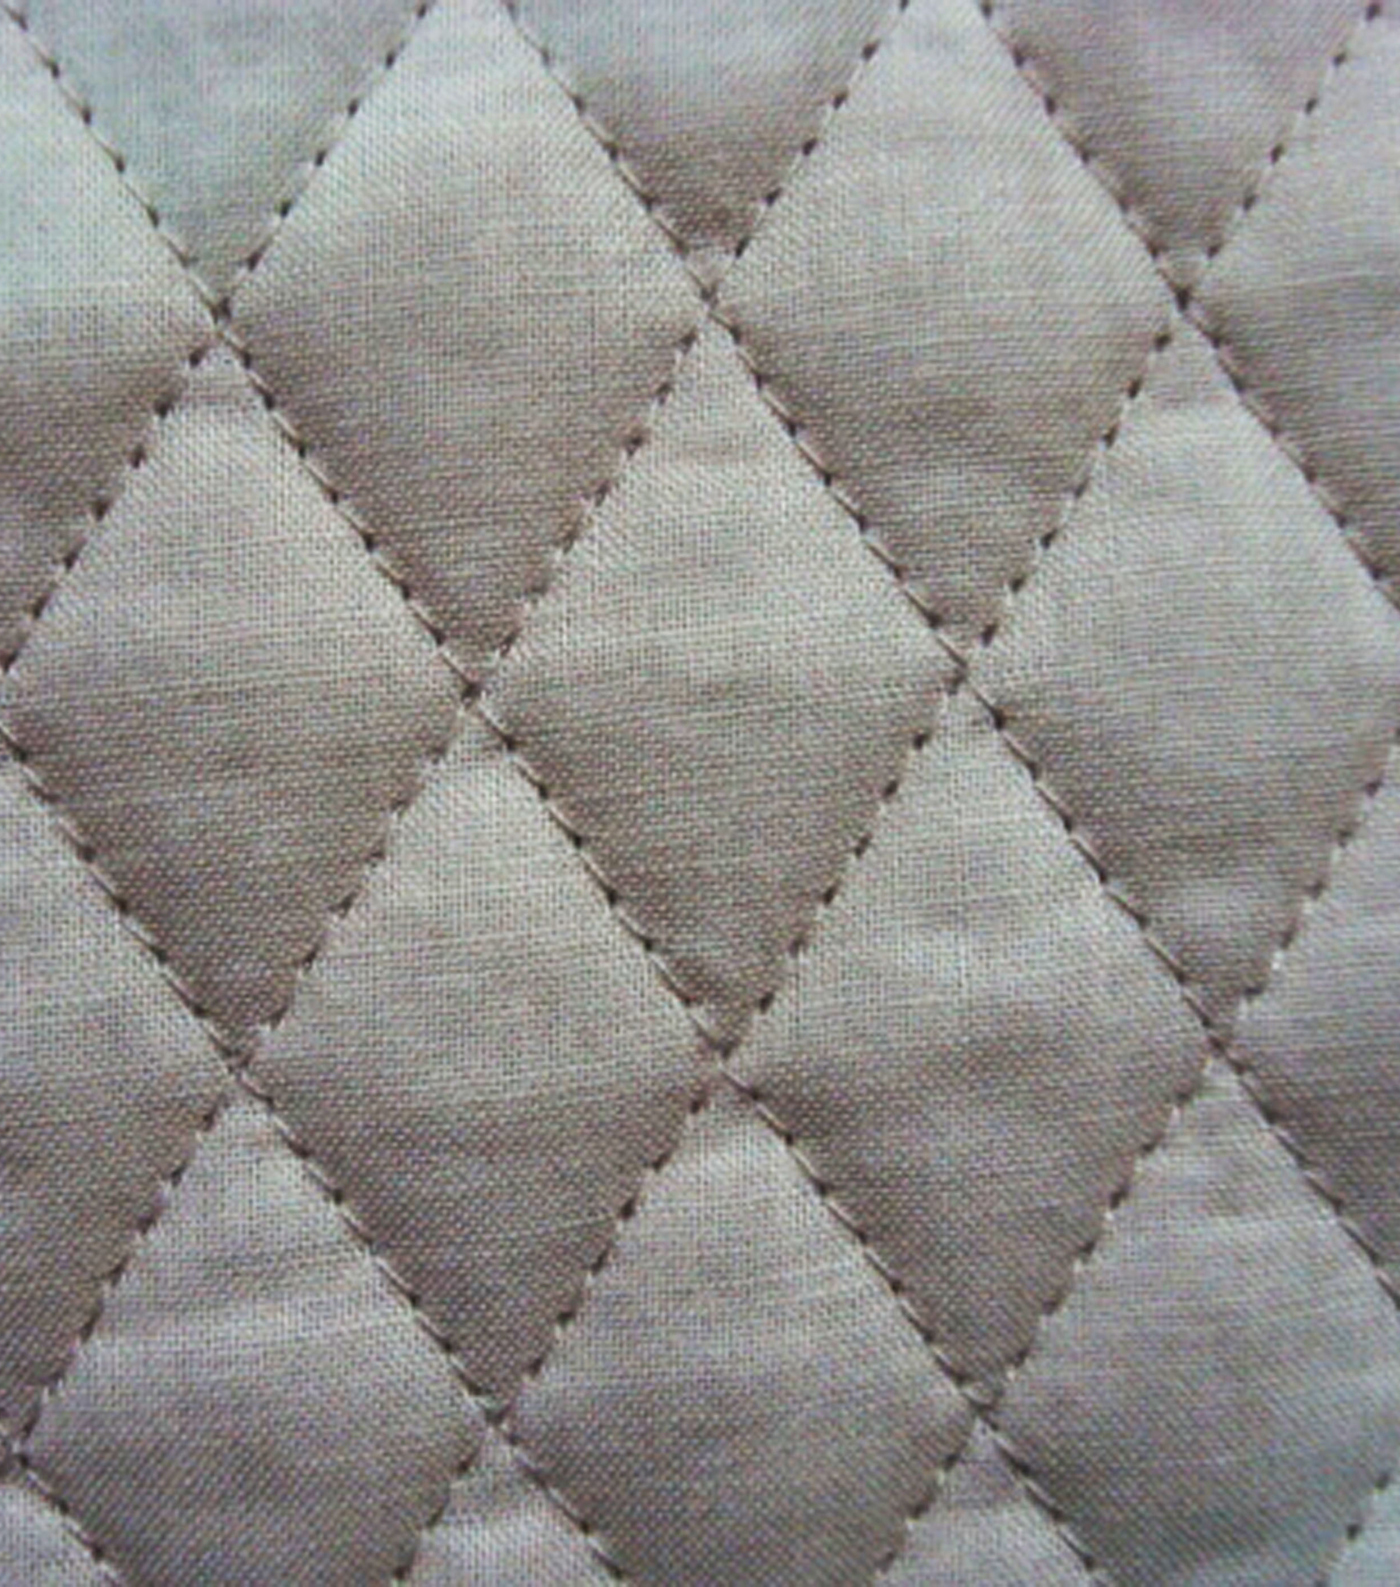 Double Faced Pre-Quilted Cotton Fabric -Diamond Solids, Tan